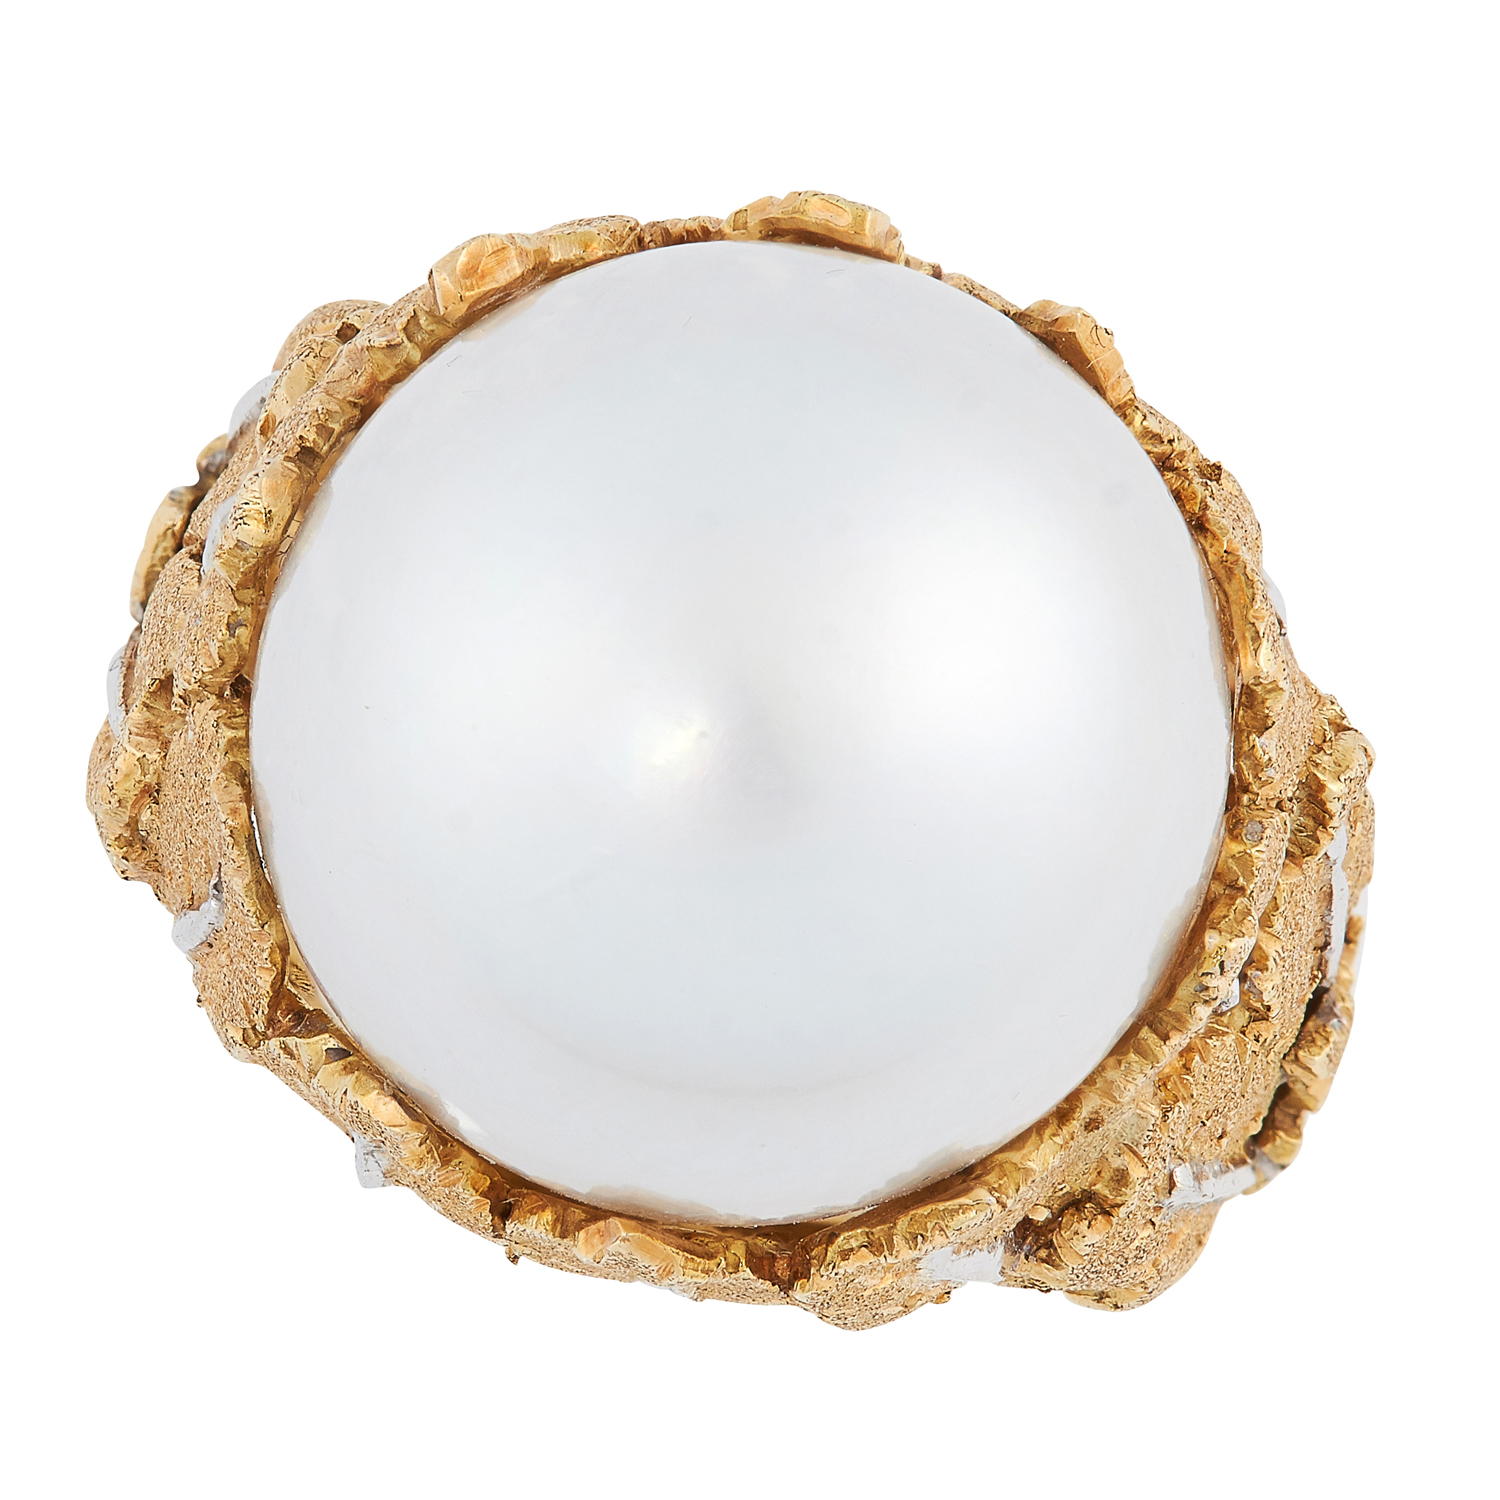 A VINTAGE PEARL DRESS RING, BUCCELLATI in 18ct yellow gold, set with a cultured pearl of 16.0mm,